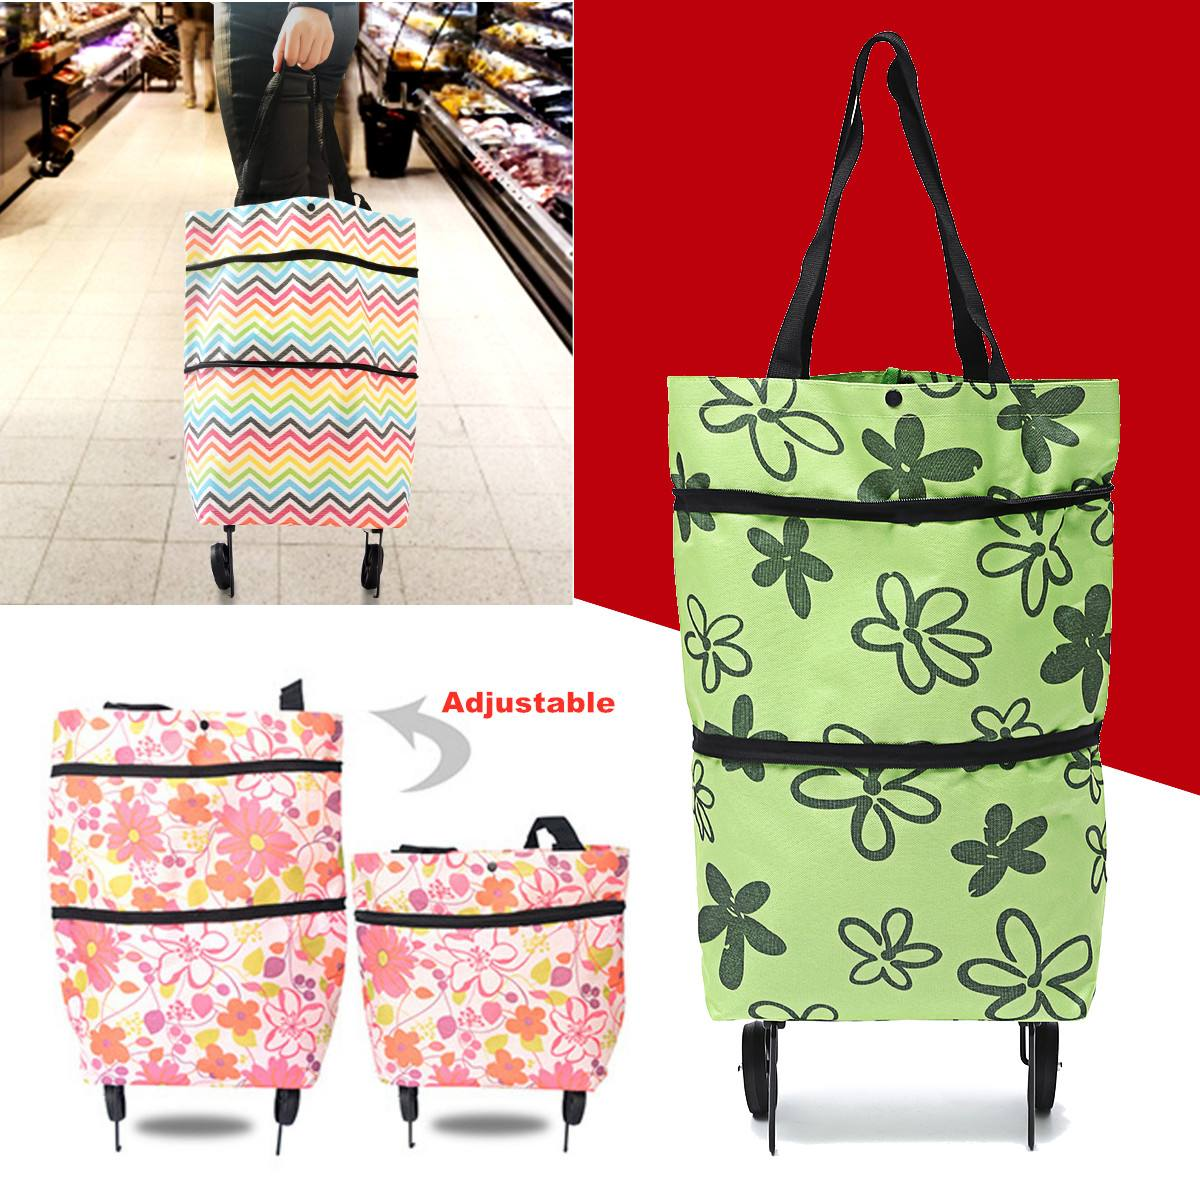 Oxford Cloth <font><b>Folding</b></font> <font><b>Shopping</b></font> Cart Laundry Grocery Trolley Dolly Handcart Market <font><b>Shopping</b></font> <font><b>Bag</b></font> with 2 <font><b>Wheels</b></font> Portable Tug Car image